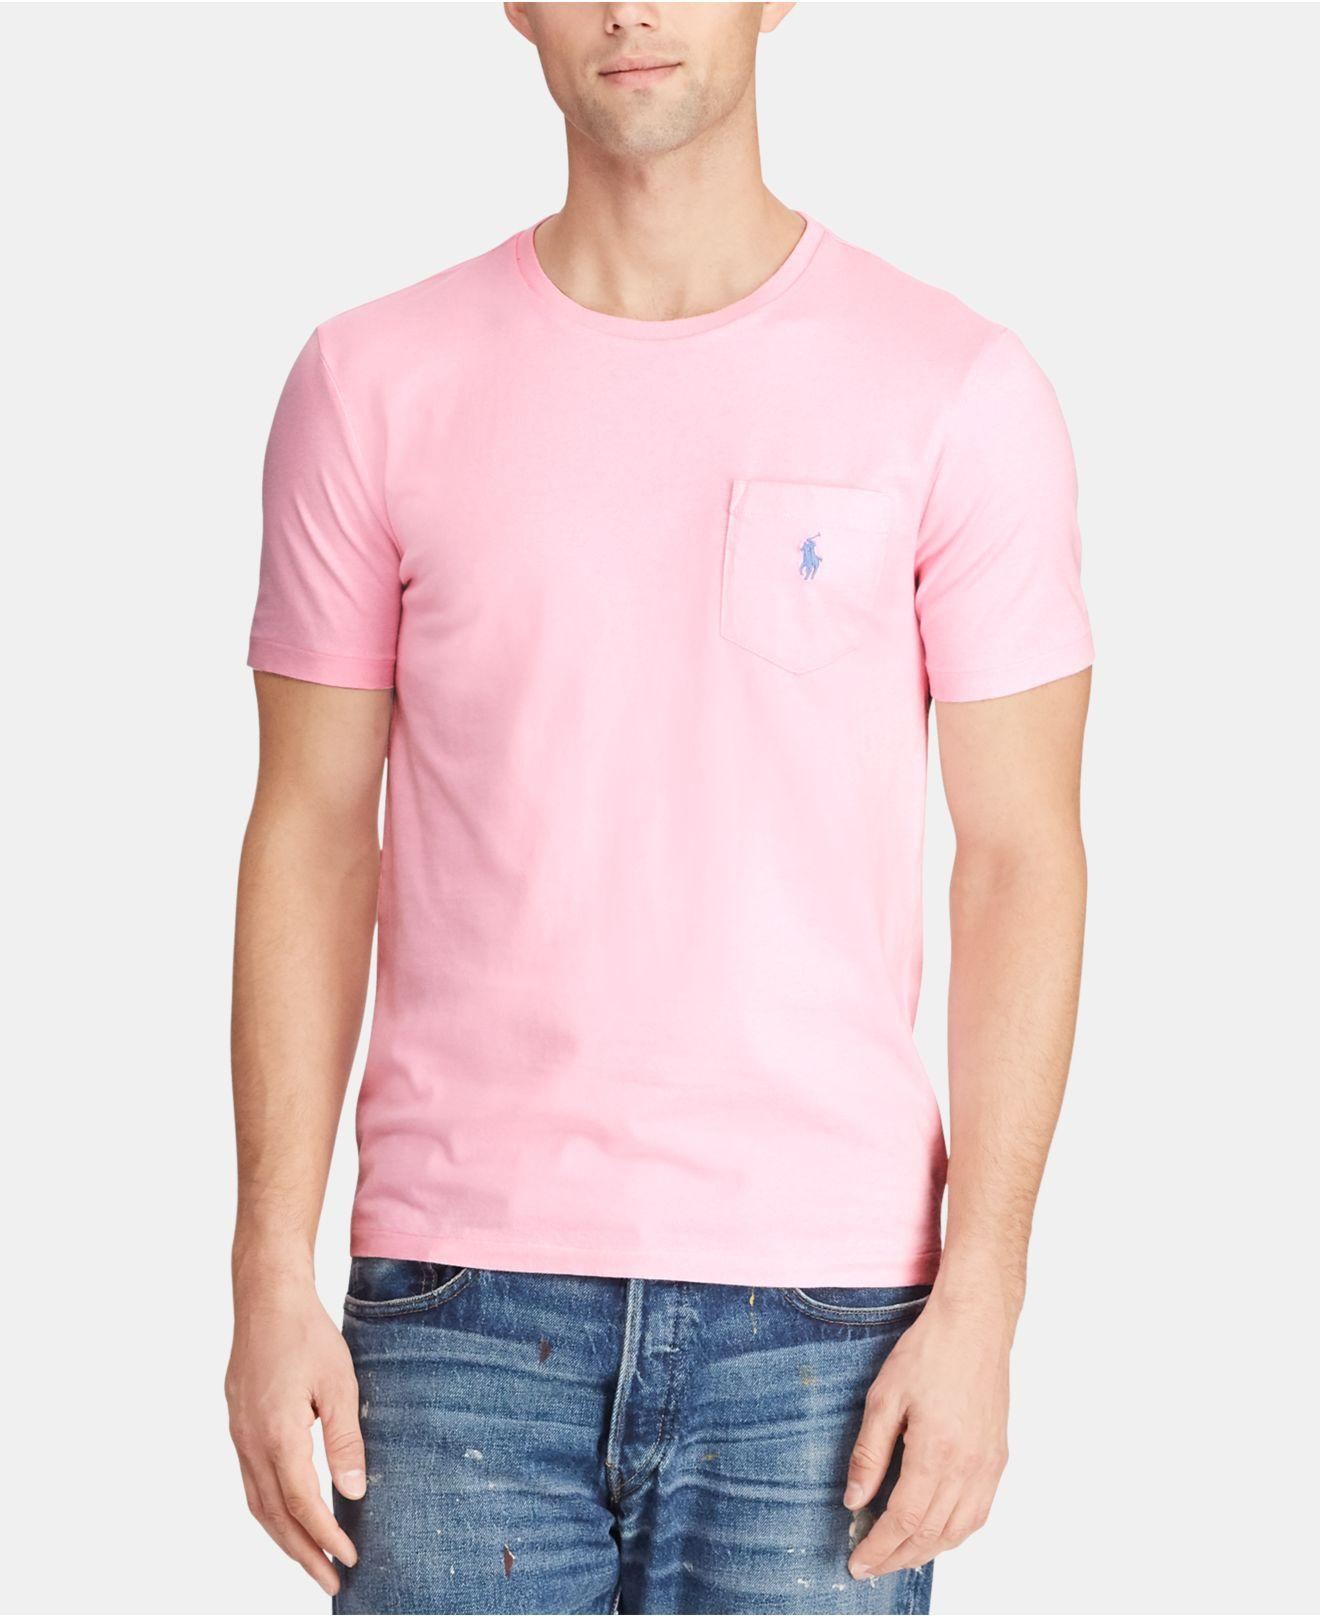 719f060e6 Lyst - Polo Ralph Lauren Classic Fit Pocket Cotton T-shirt in Pink ...